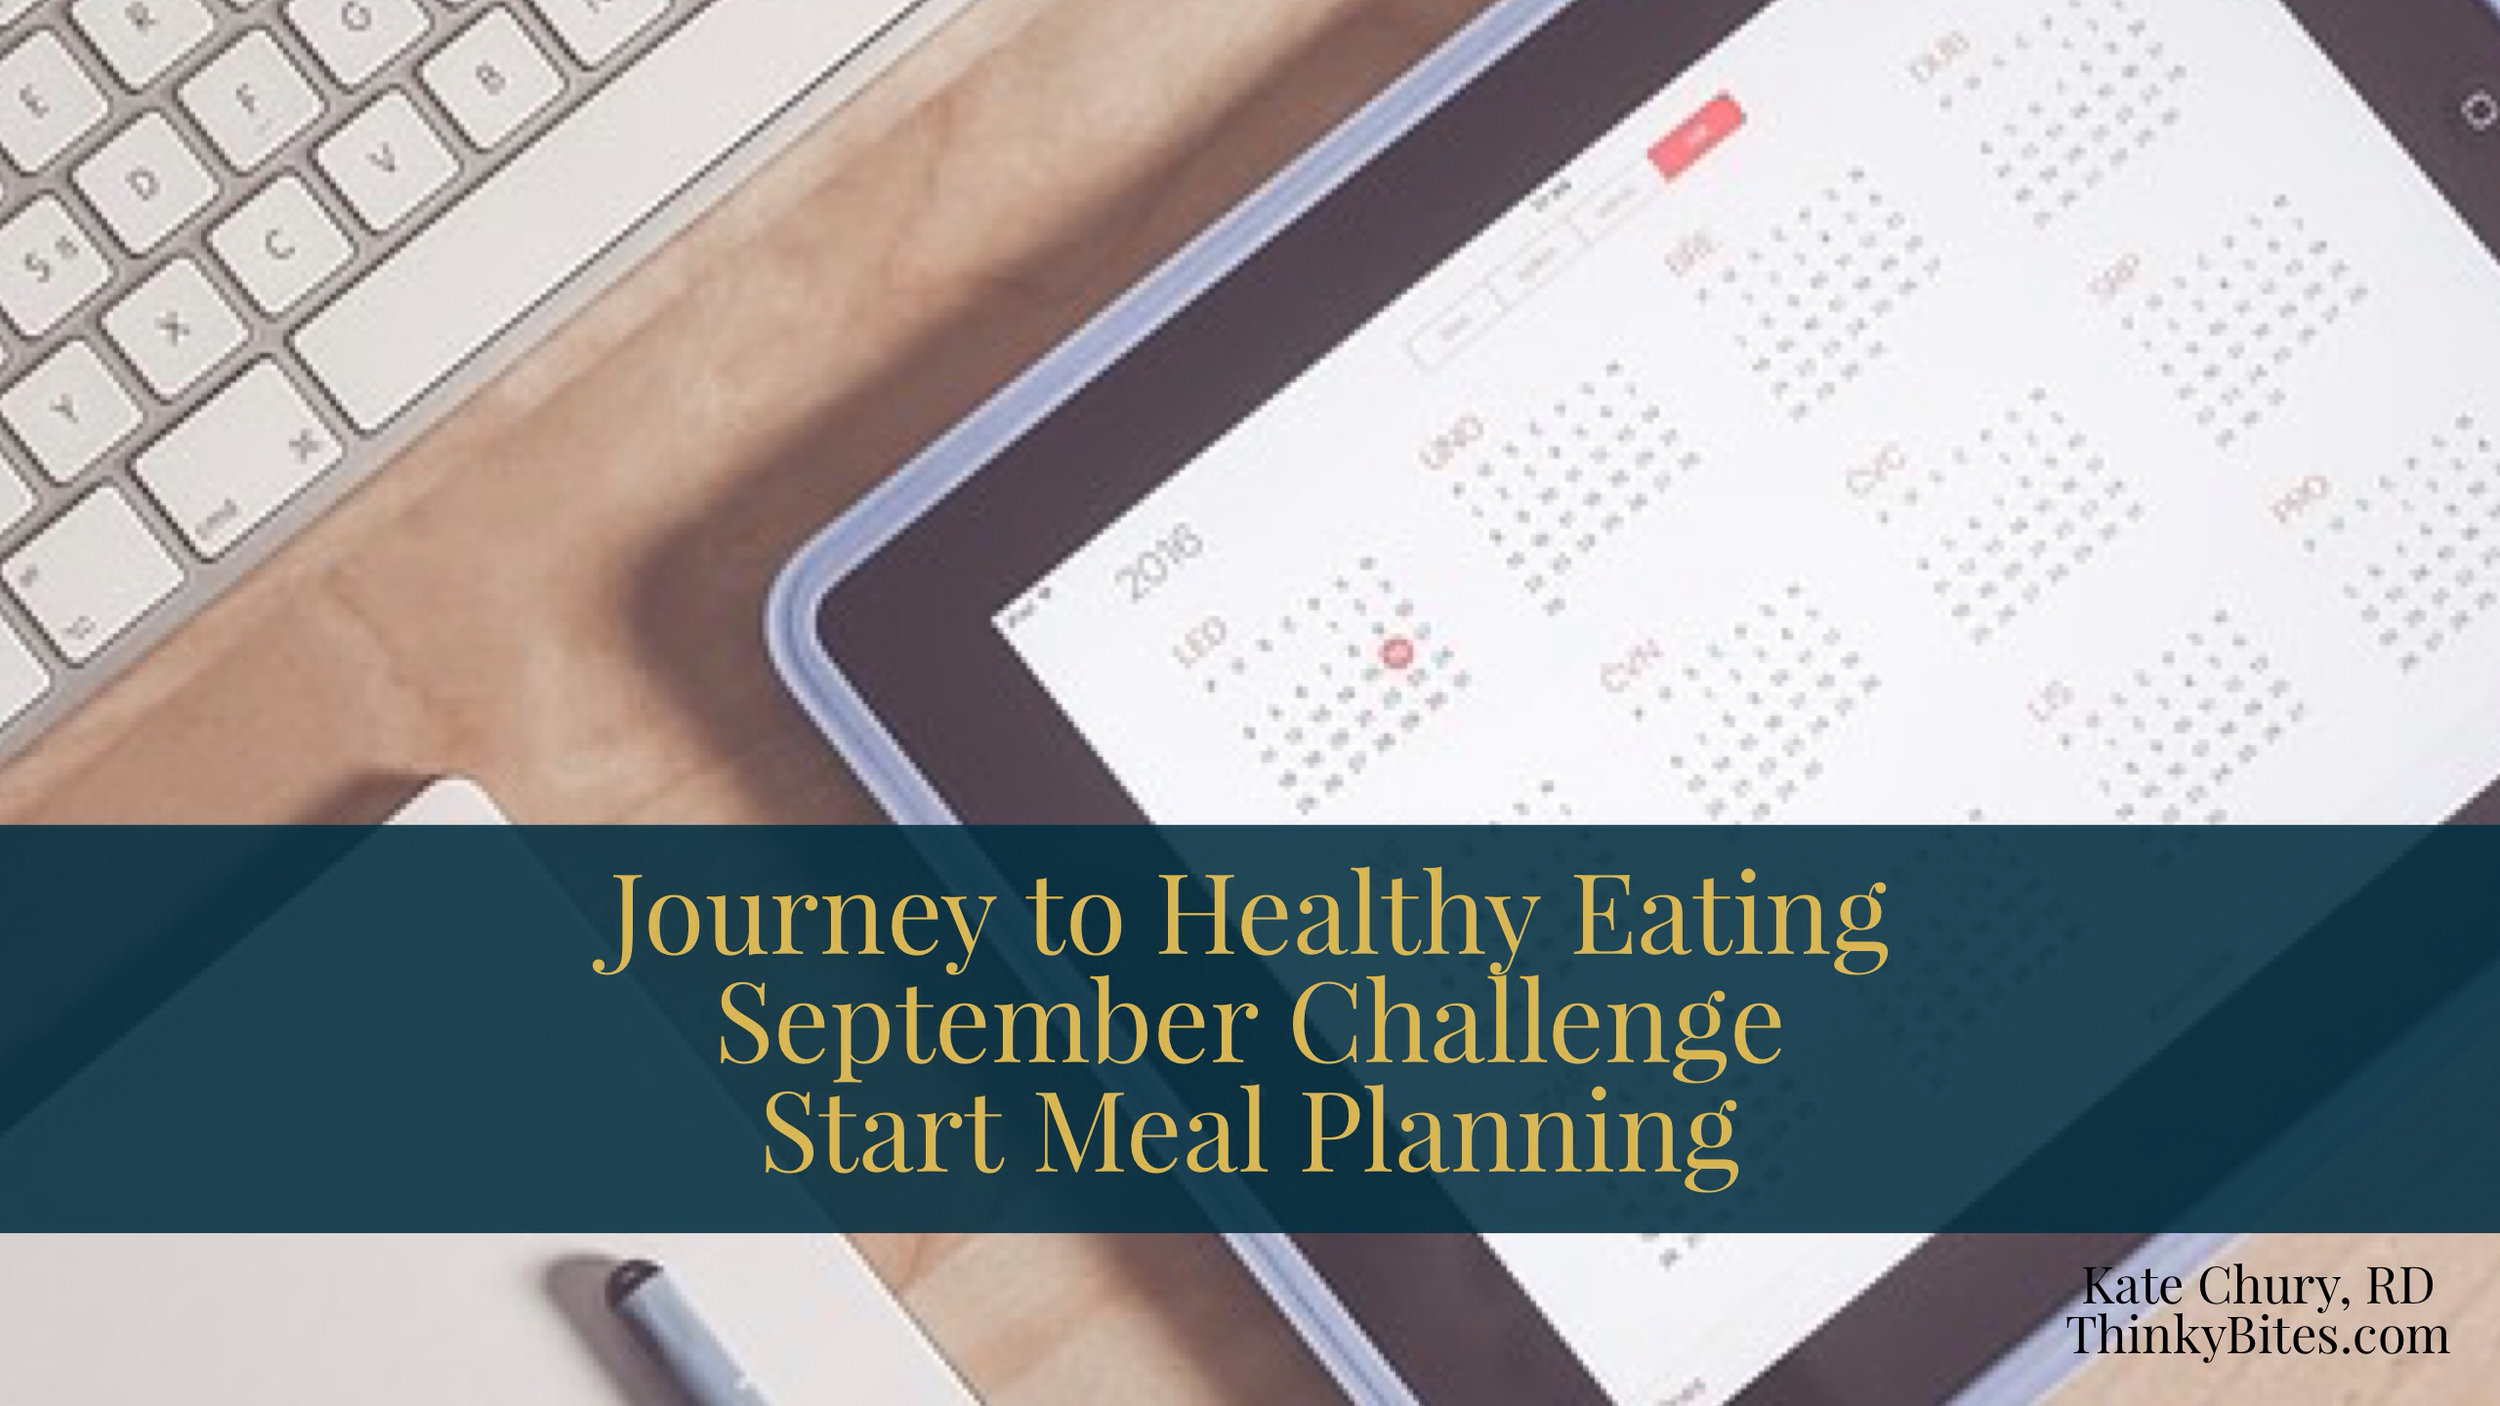 Meal Planning Calgary NW Dietitian Kate